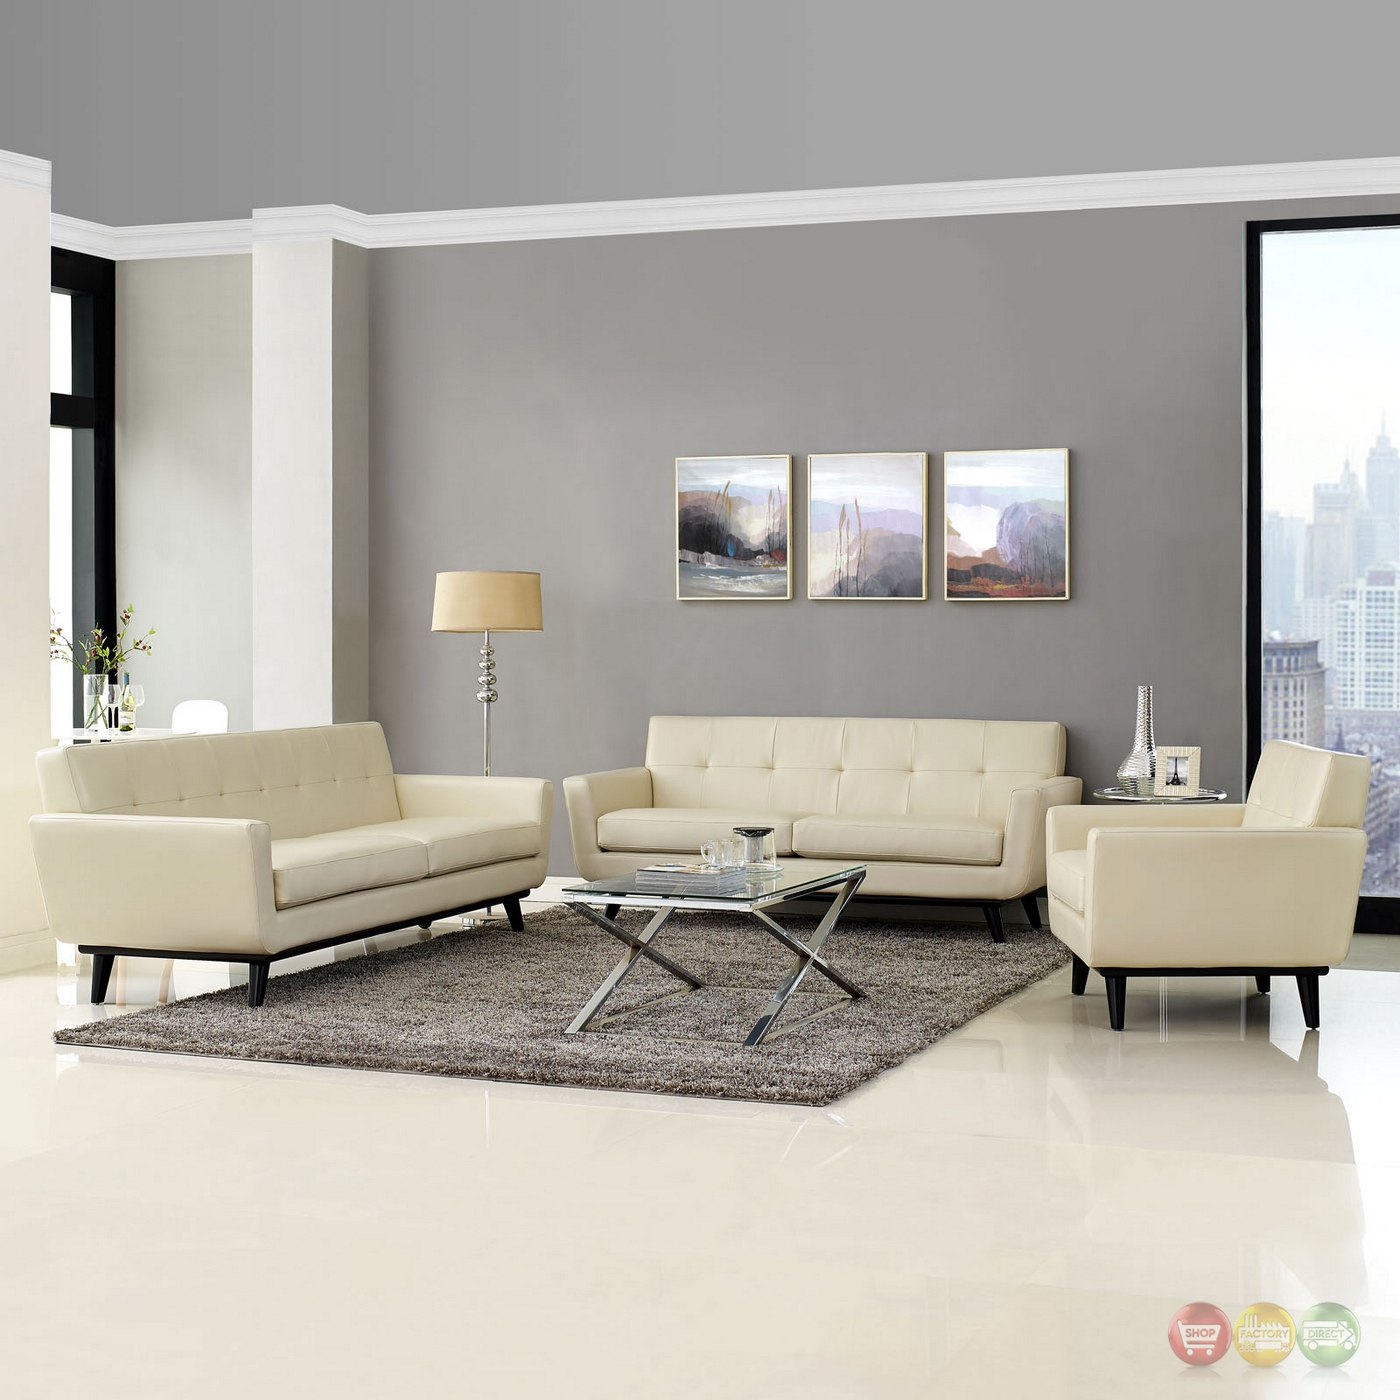 Engage Contemporary 3pc Button Tufted Leather Living Room Set Beige